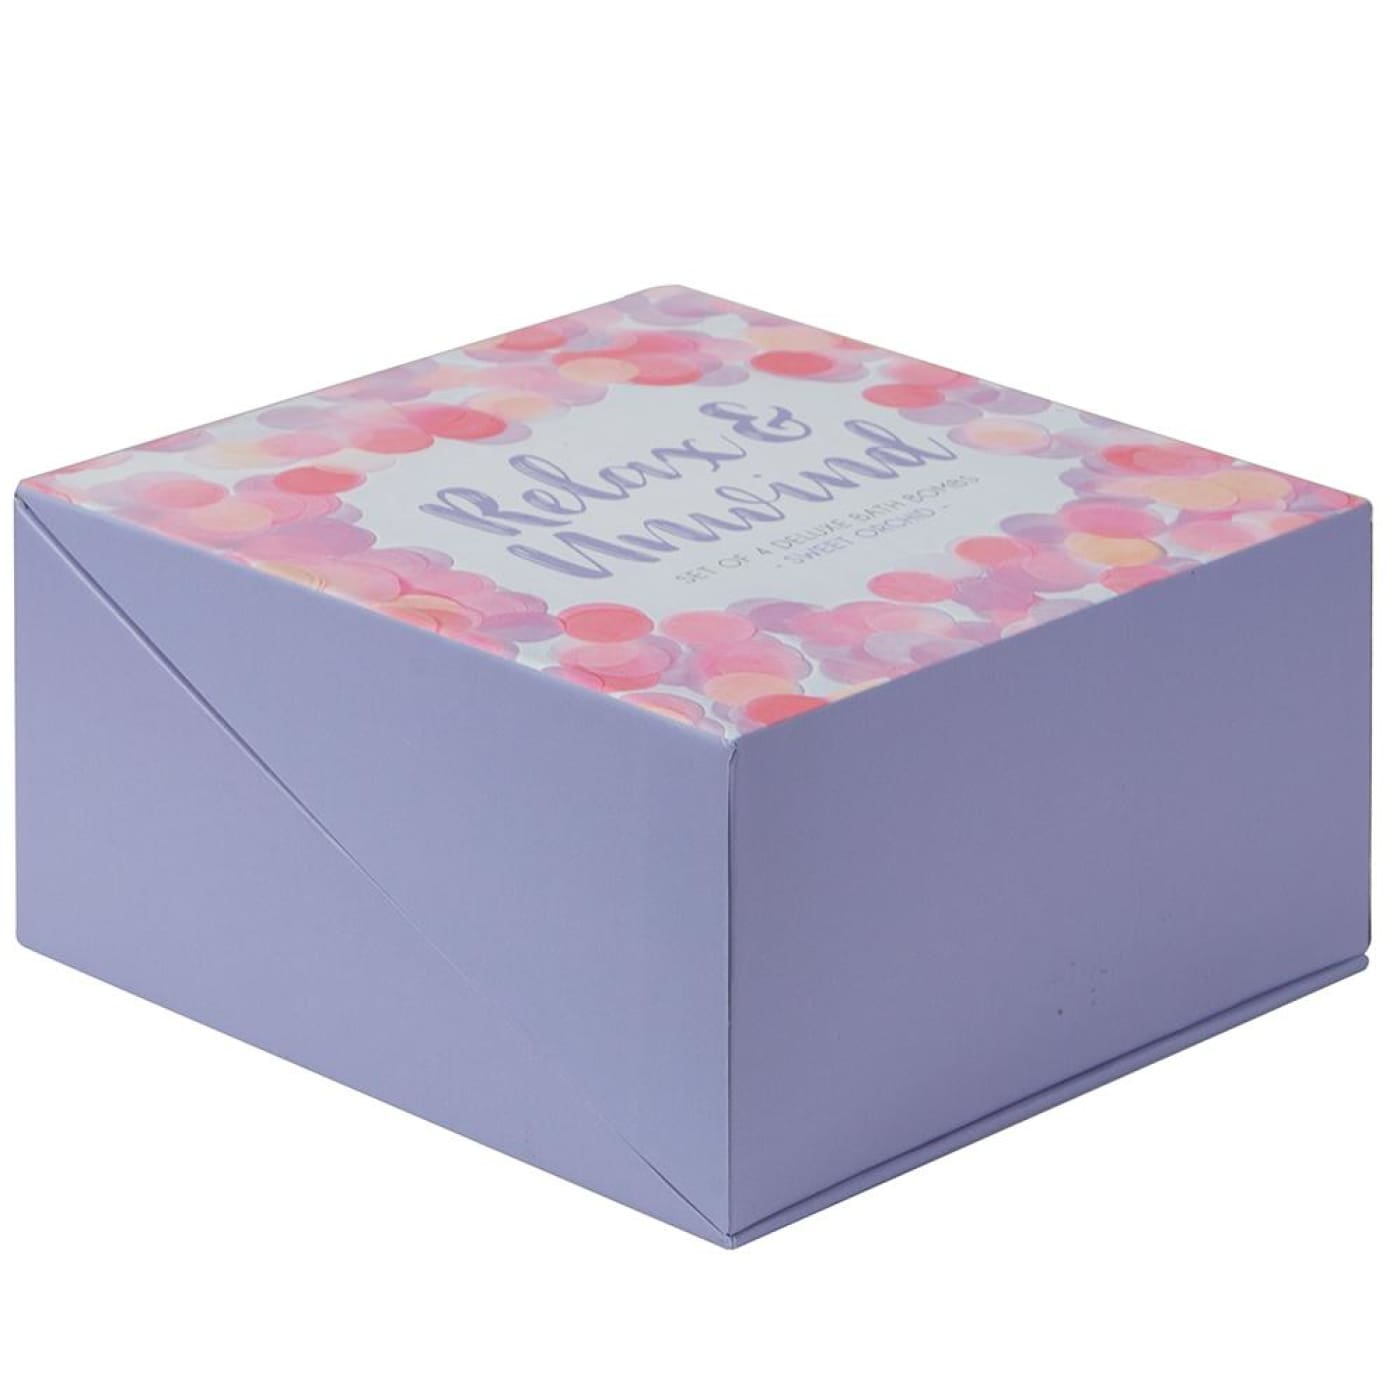 Annabel Trends Bath Bomb - Relax Unwind 4PC - Relax Unwind - FOR MUM - COSMETICS/GROOMING